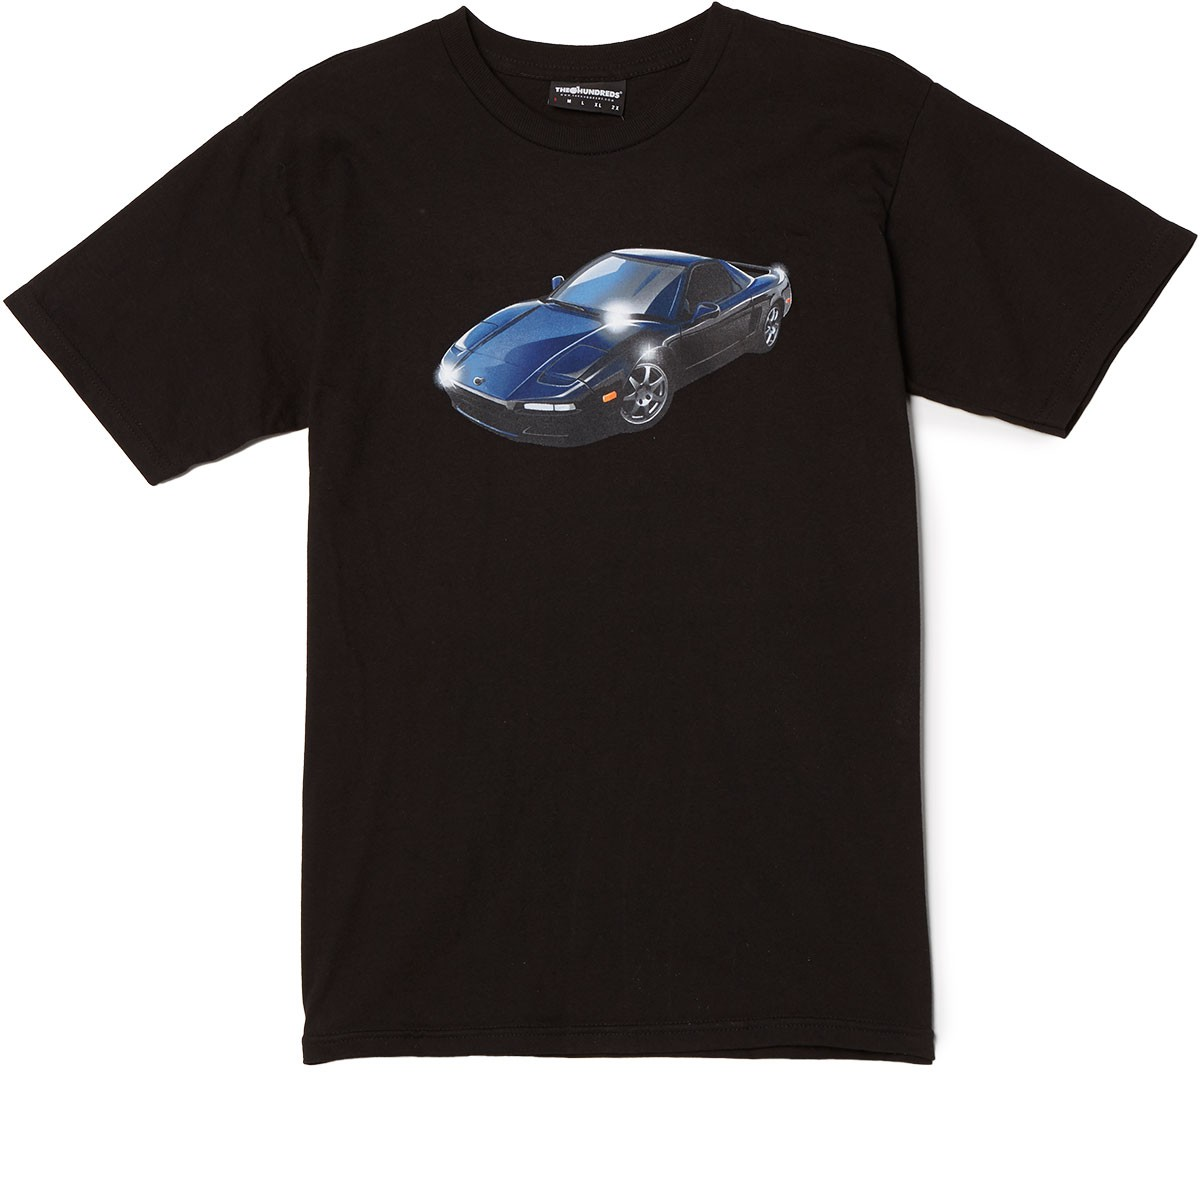 The Hundreds Akita Acura T-Shirt